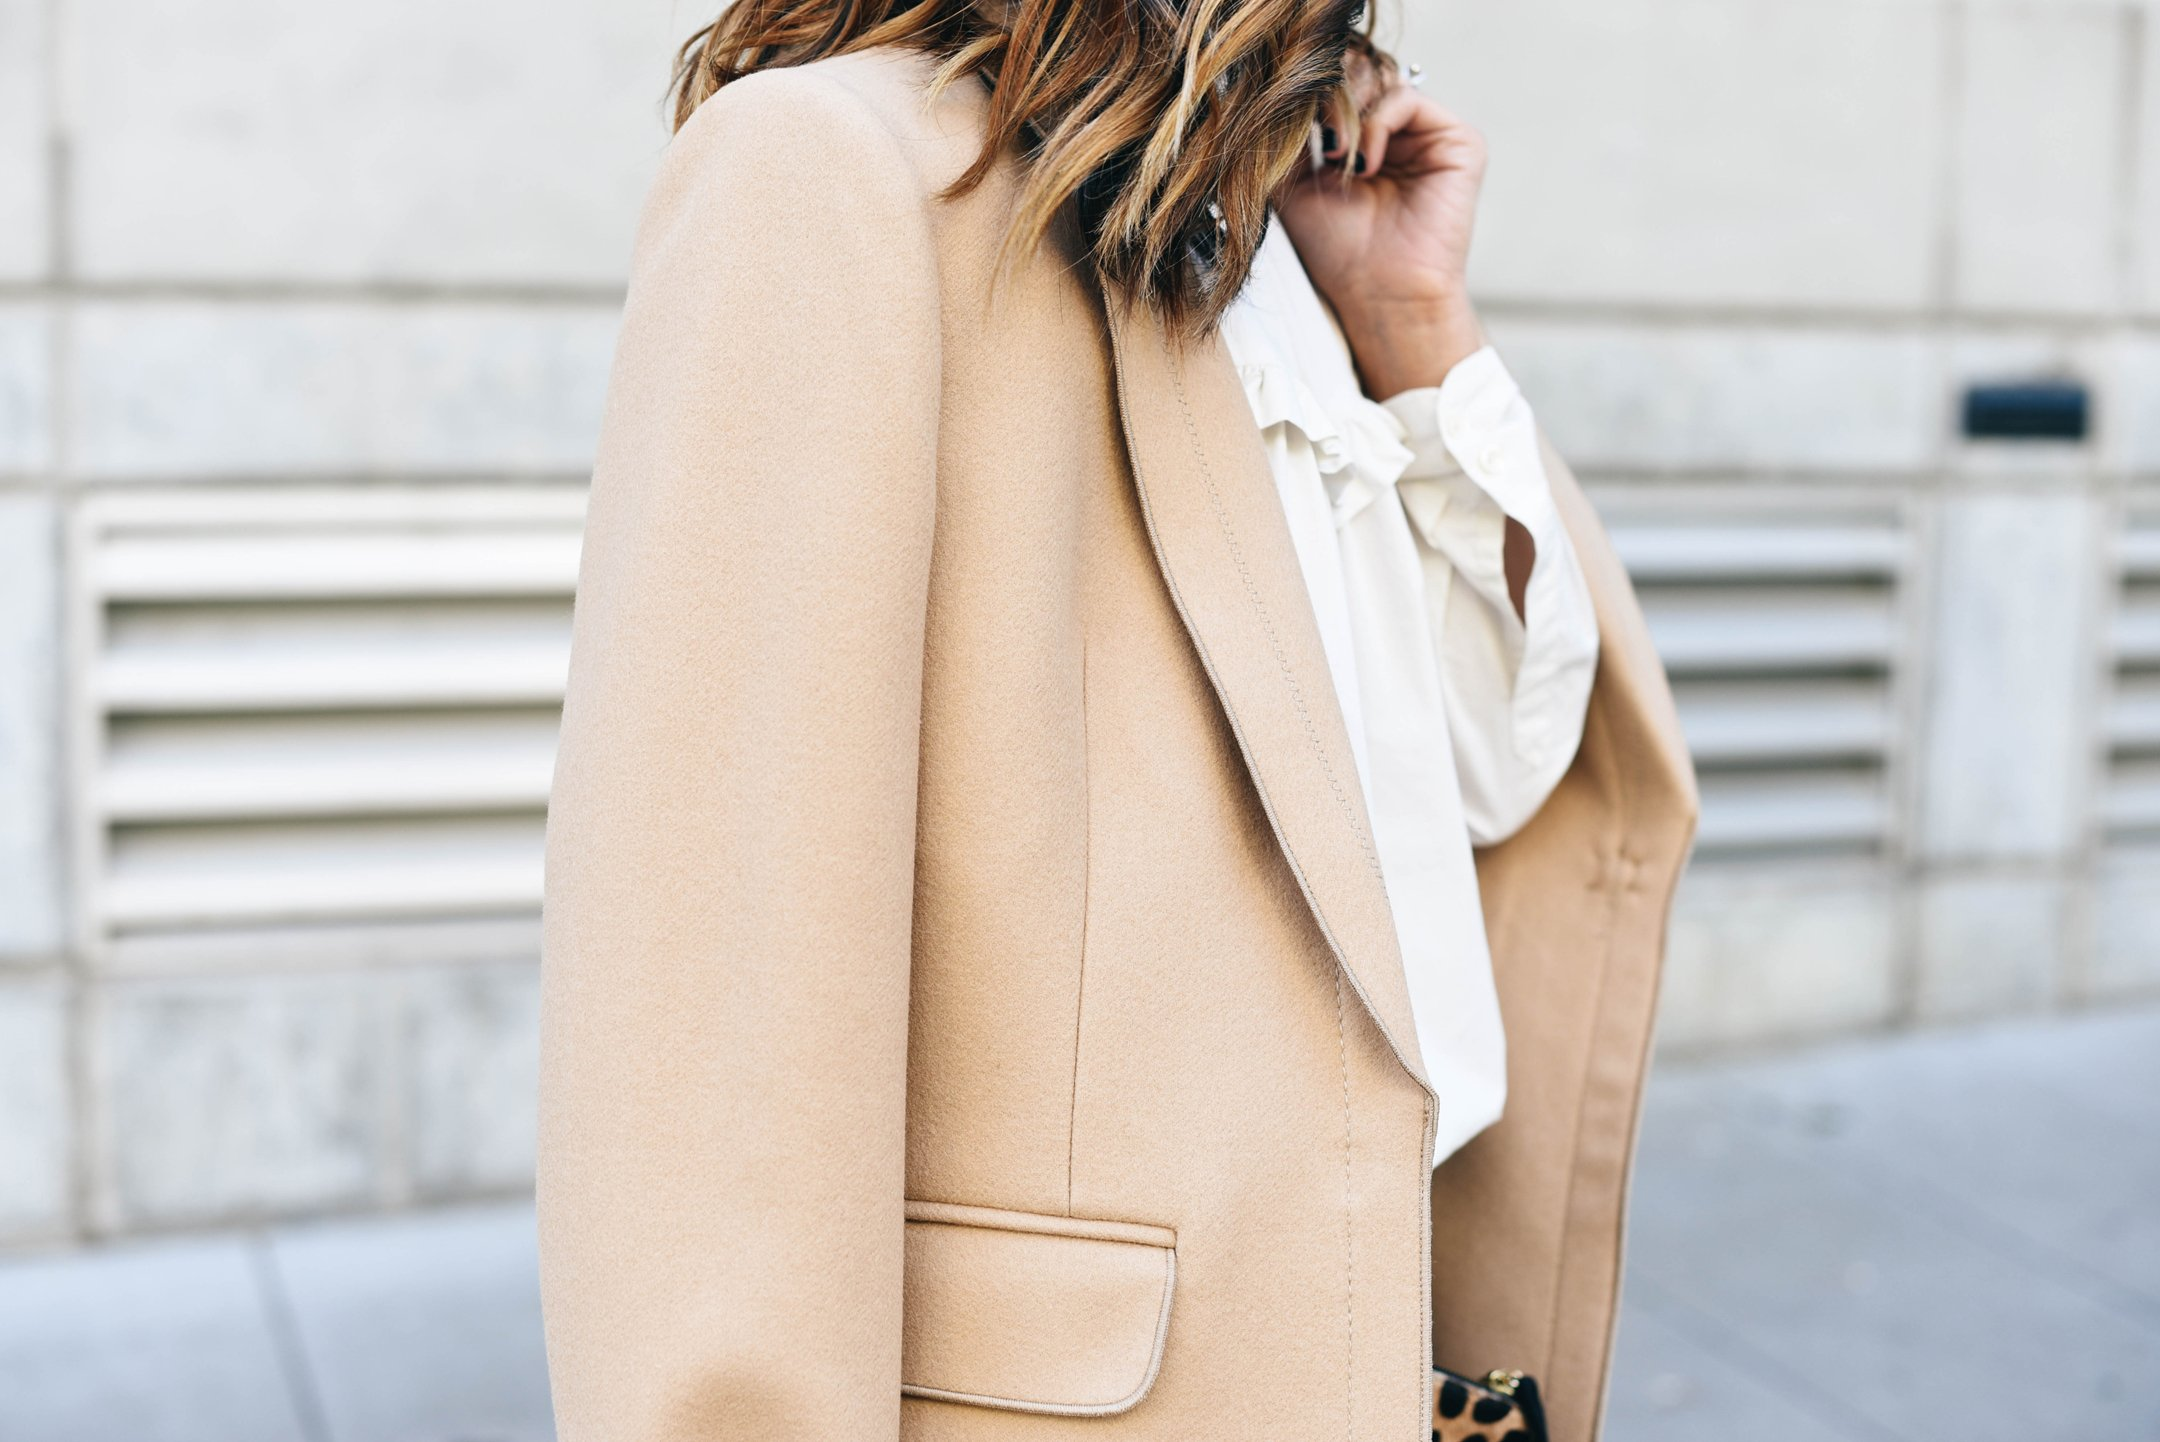 crystalin-marie-wearing-banana-republic-petite-melton-wool-buttoned-top-coat